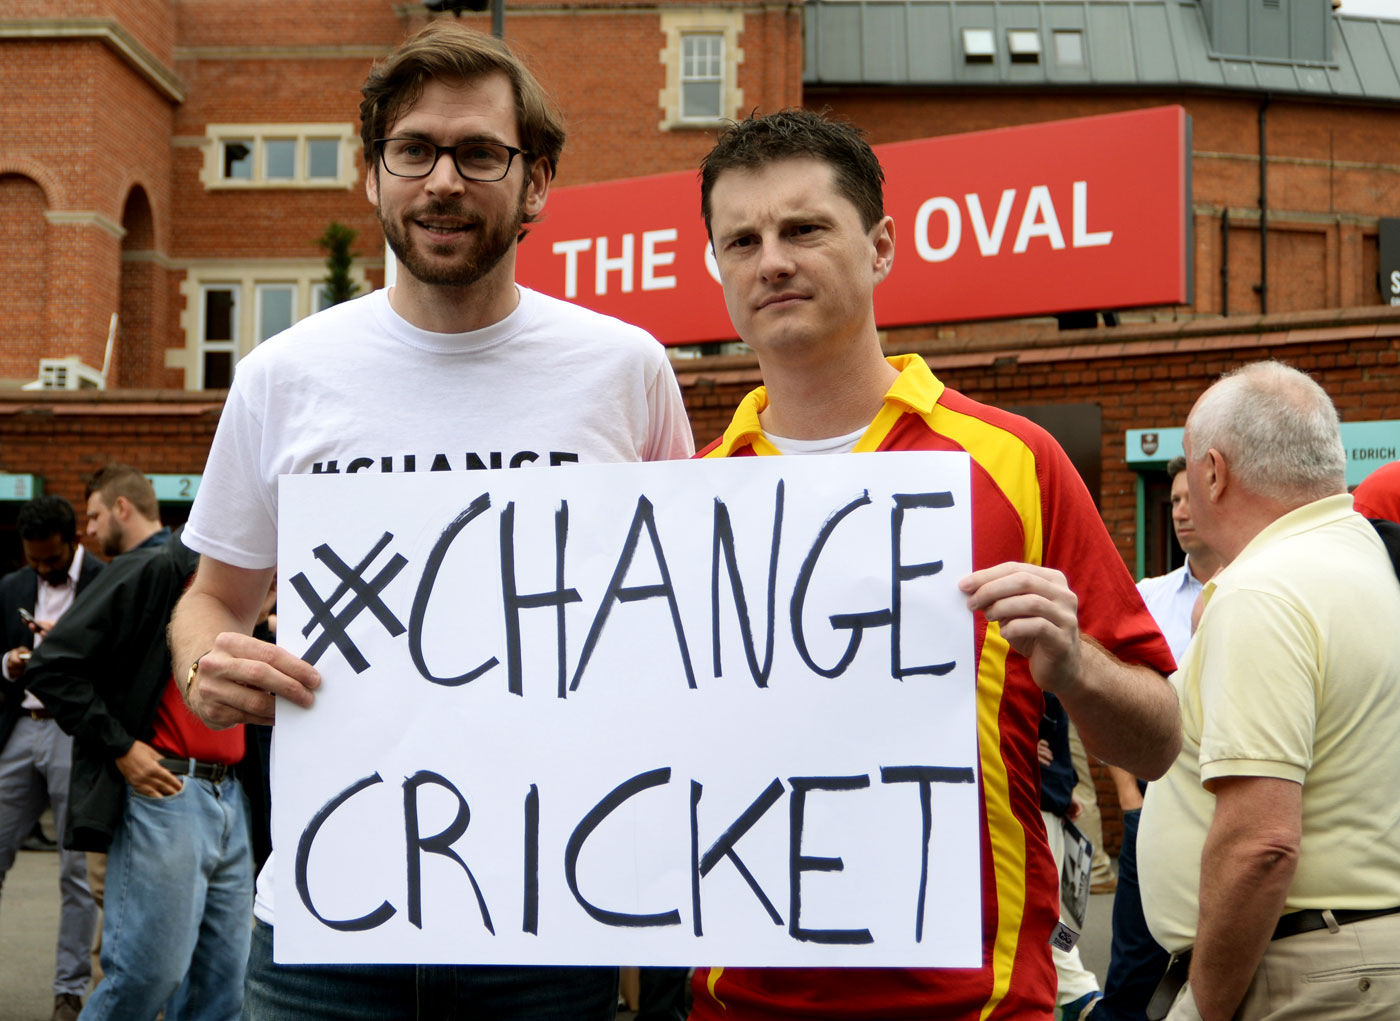 The makers of <i>Death of a Gentleman</i>, Sam Collins and Jarrod Kimber, call for change outside The Oval